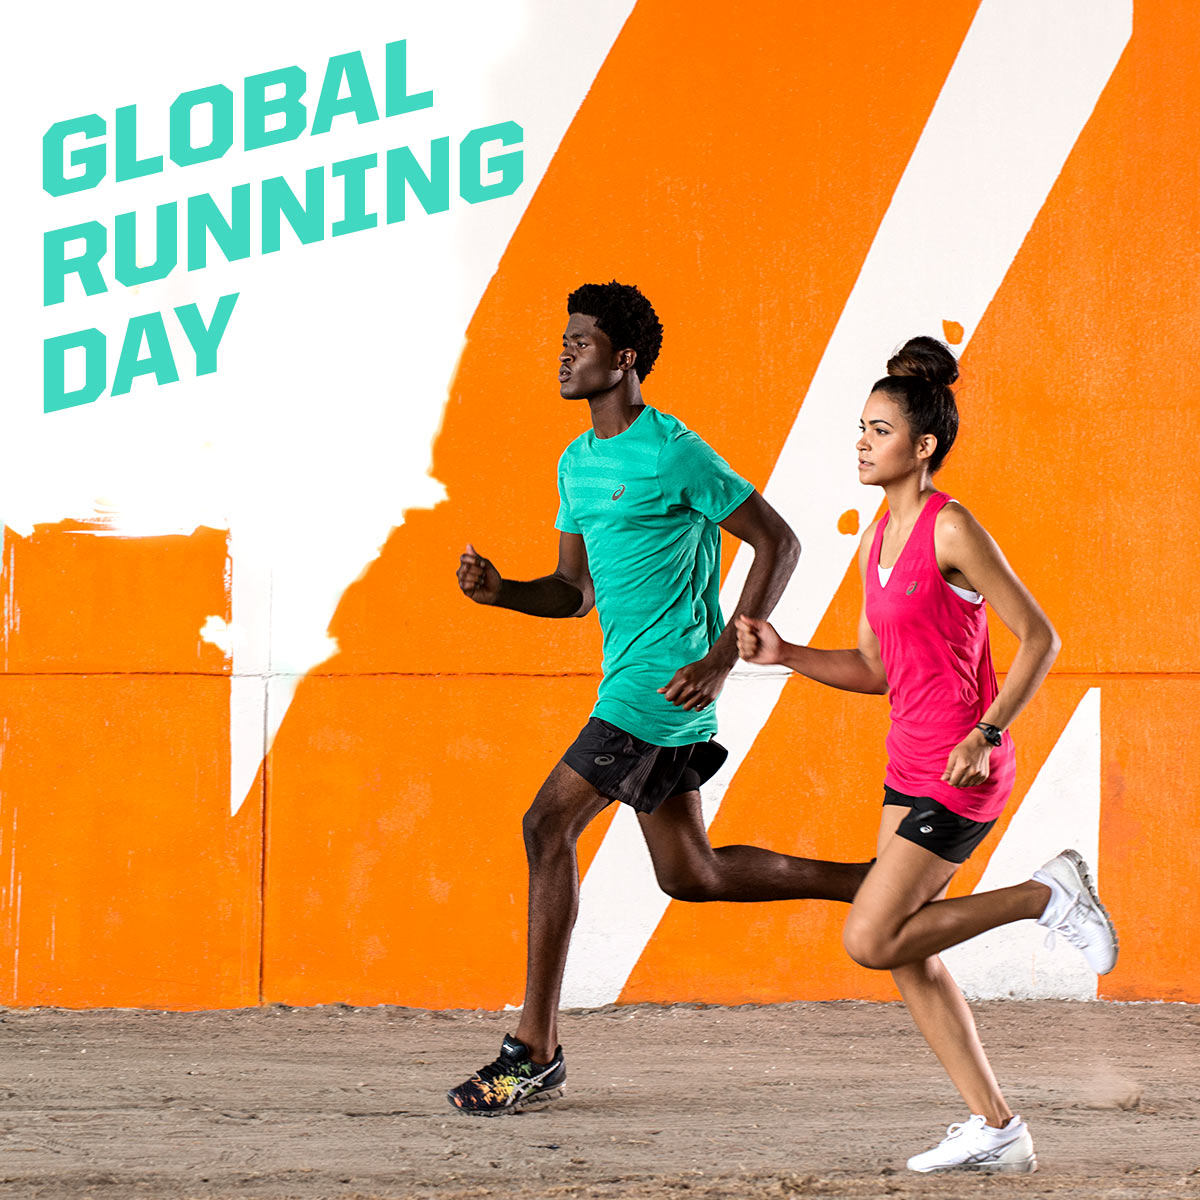 Happy Global Running Day Eastbay Blog: Eastbay Blog  Eastbay Blog : Eastbay Blog